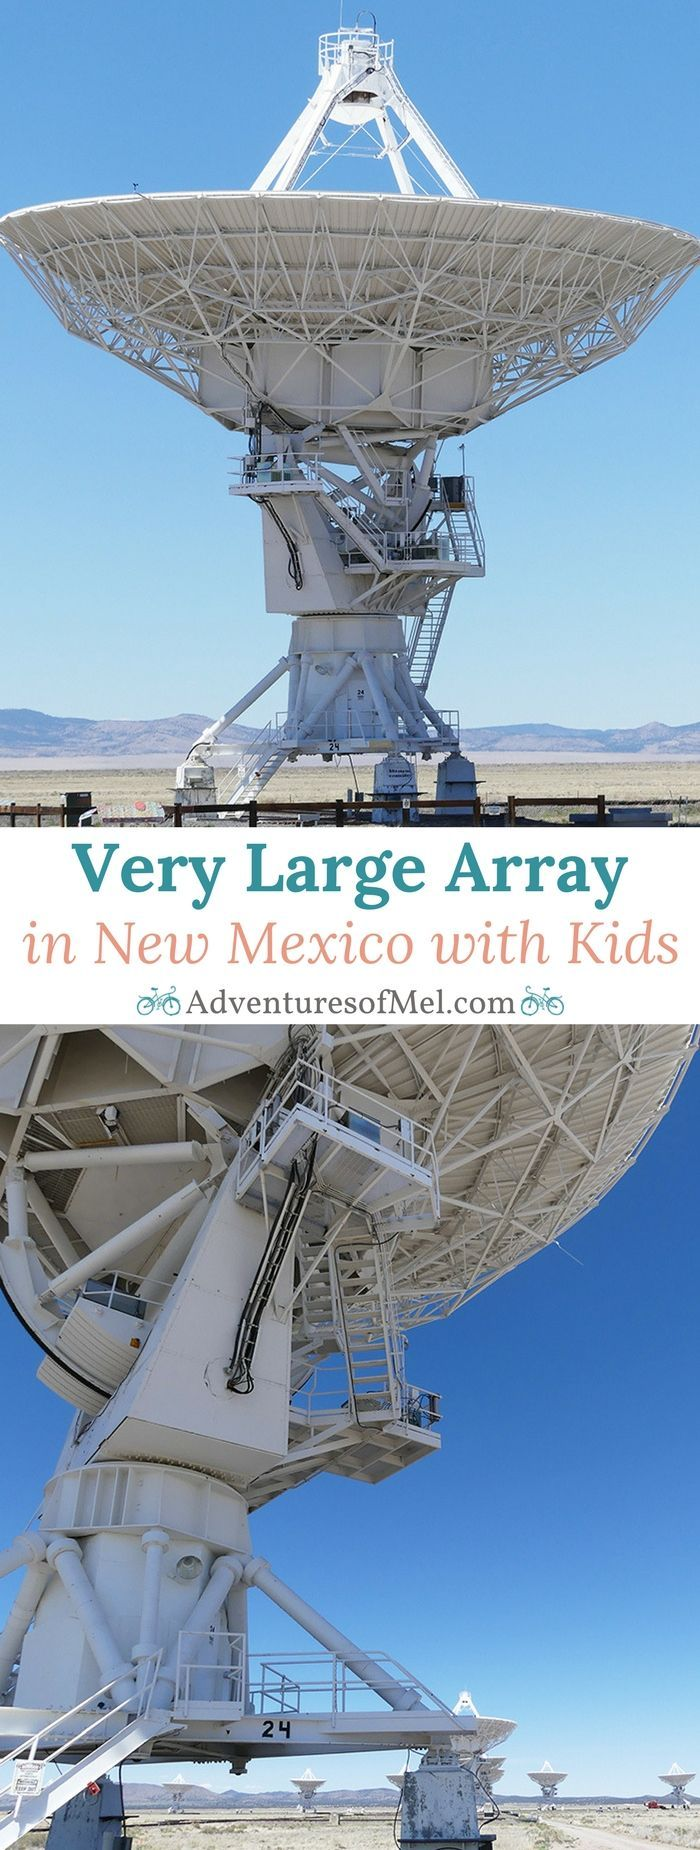 Very Large Array Radio Telescope Facility in New Mexico, an exciting place to visit with kids. Educational travel stop for astronomy buffs.